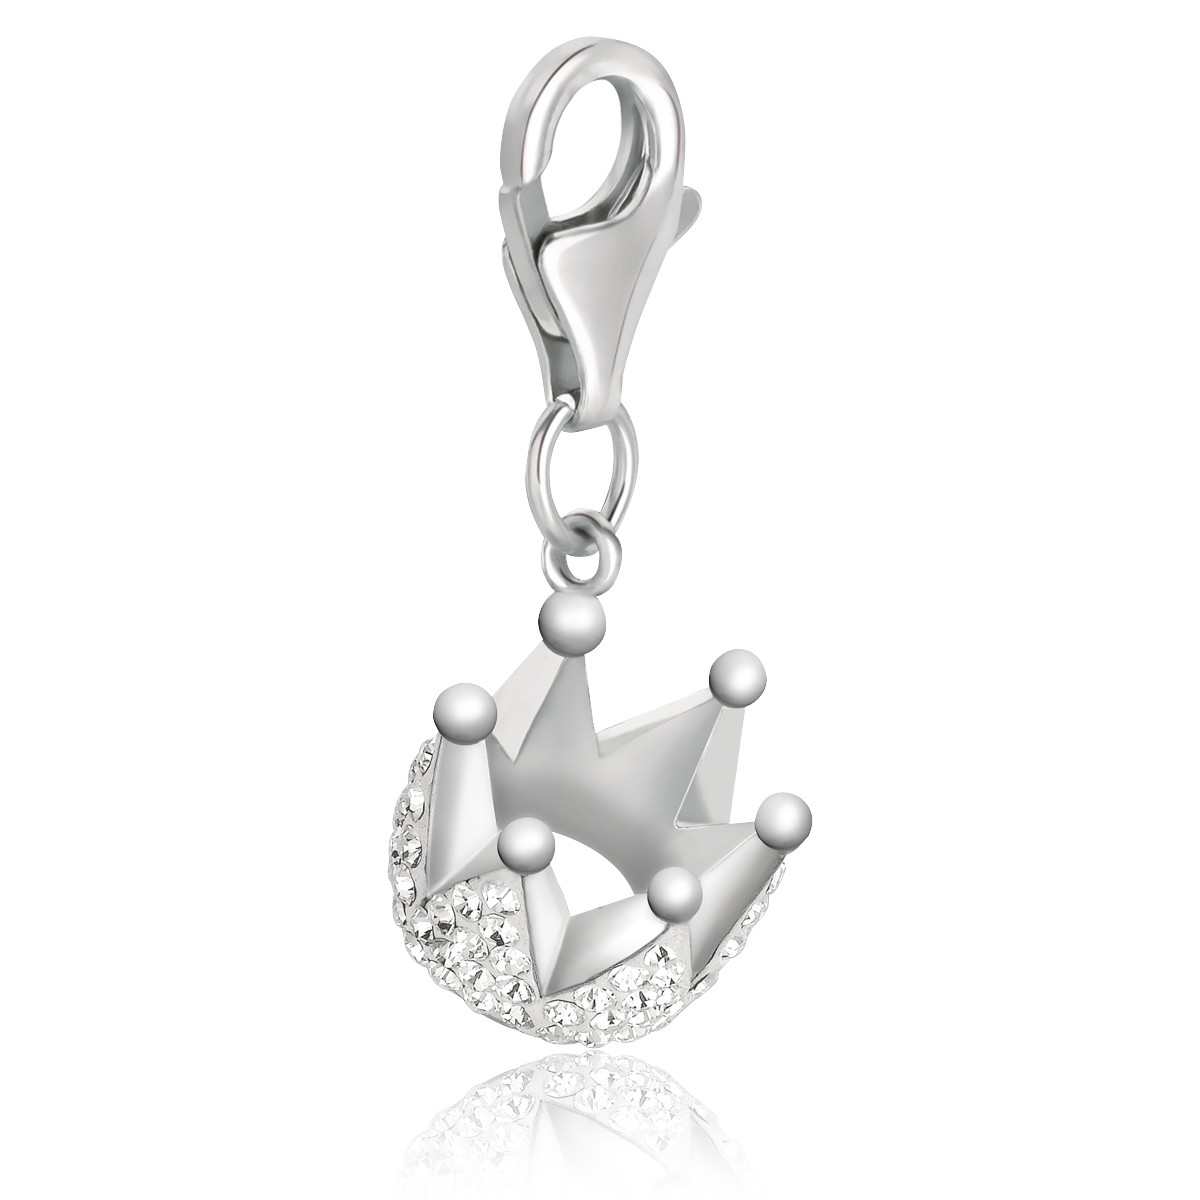 Crown Charm Bracelet: Crown Charm With White Crystal Accents In Sterling Silver